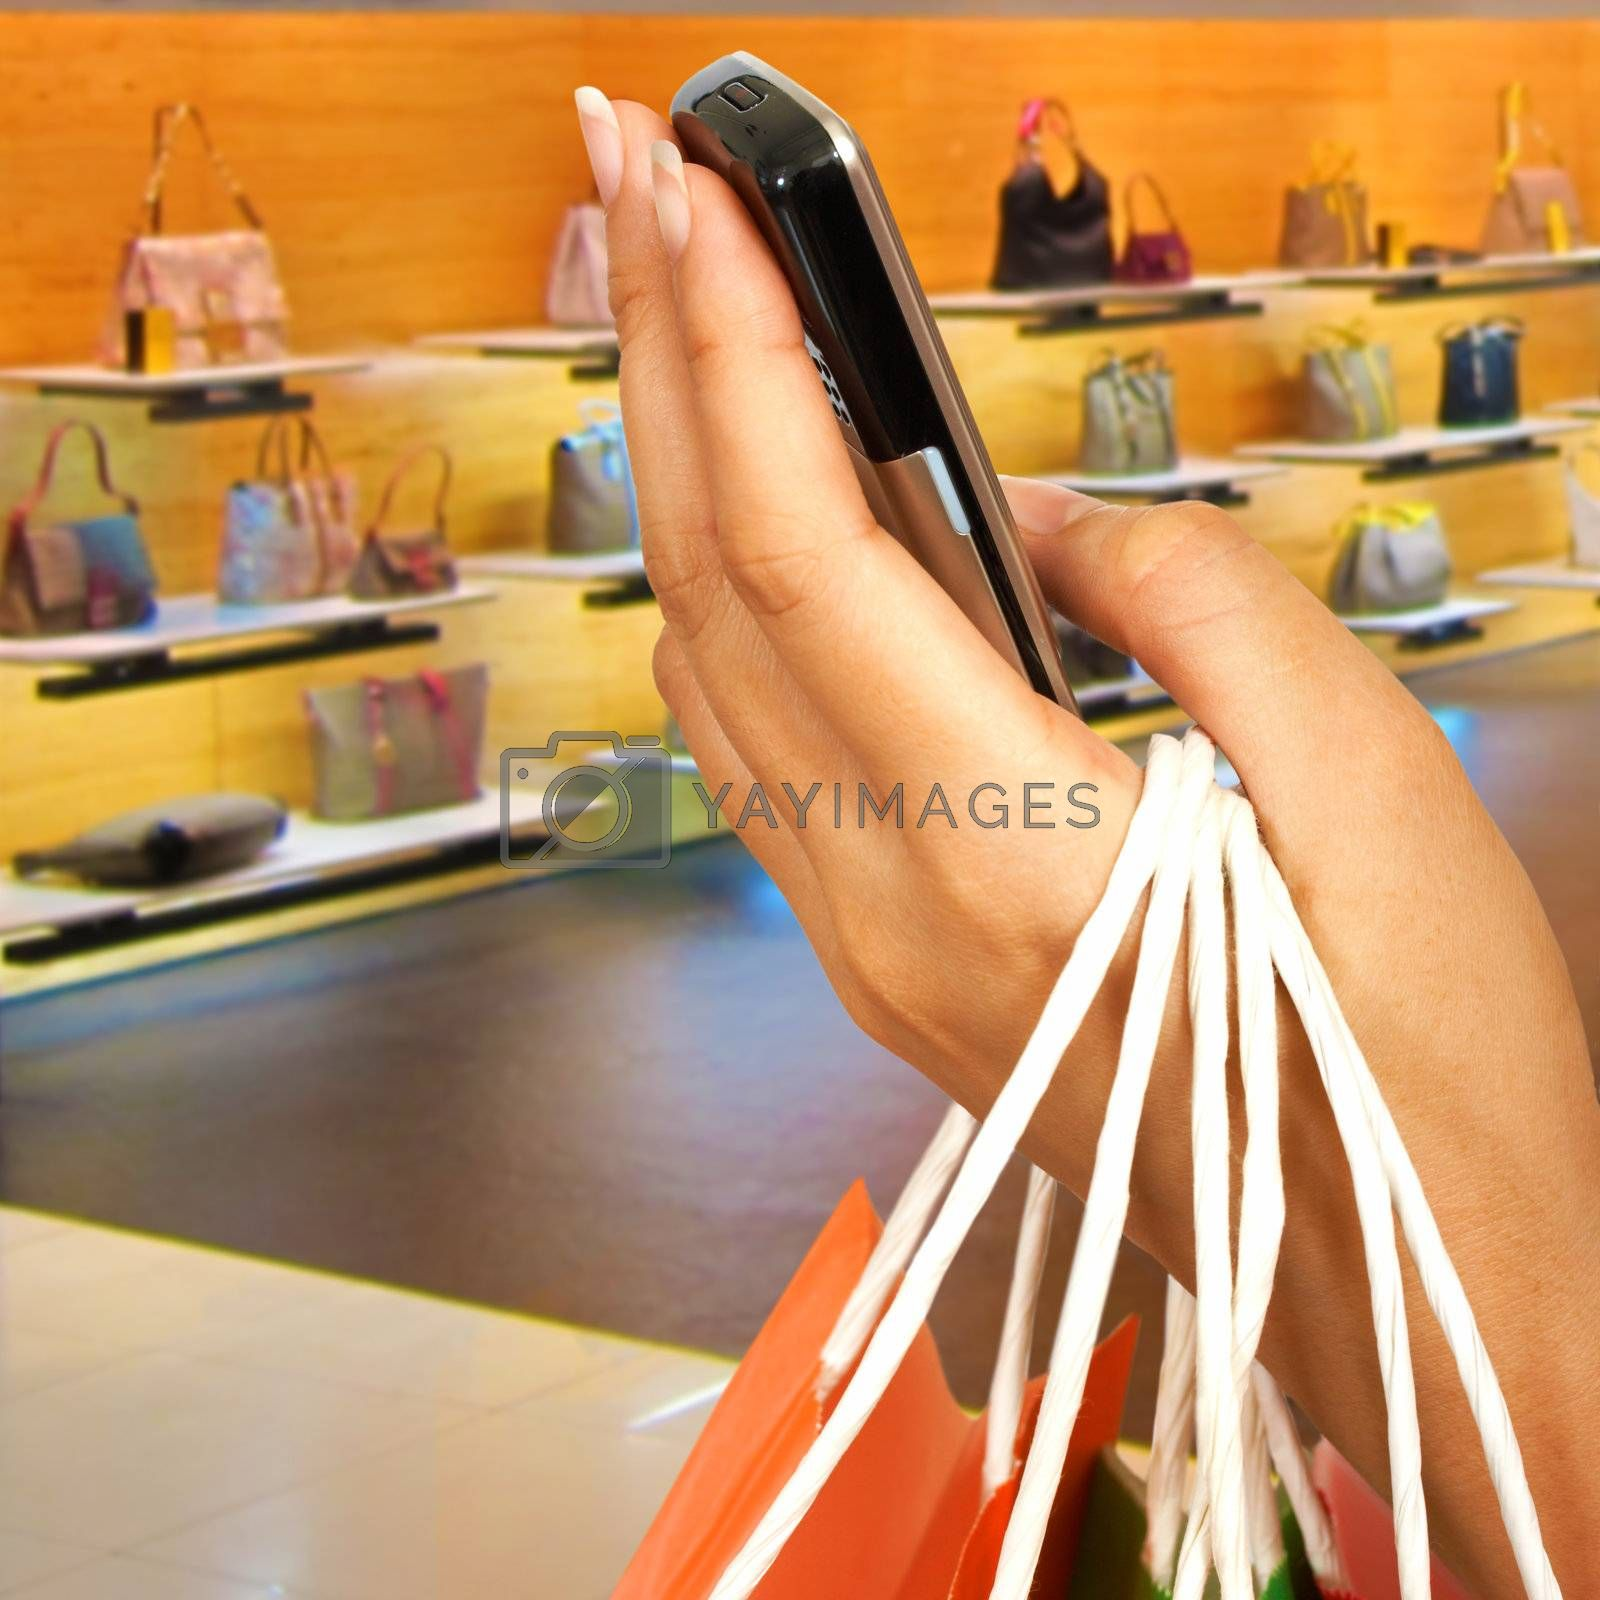 Making A Phone Call In A Shopping Center Outside A Handbag Store